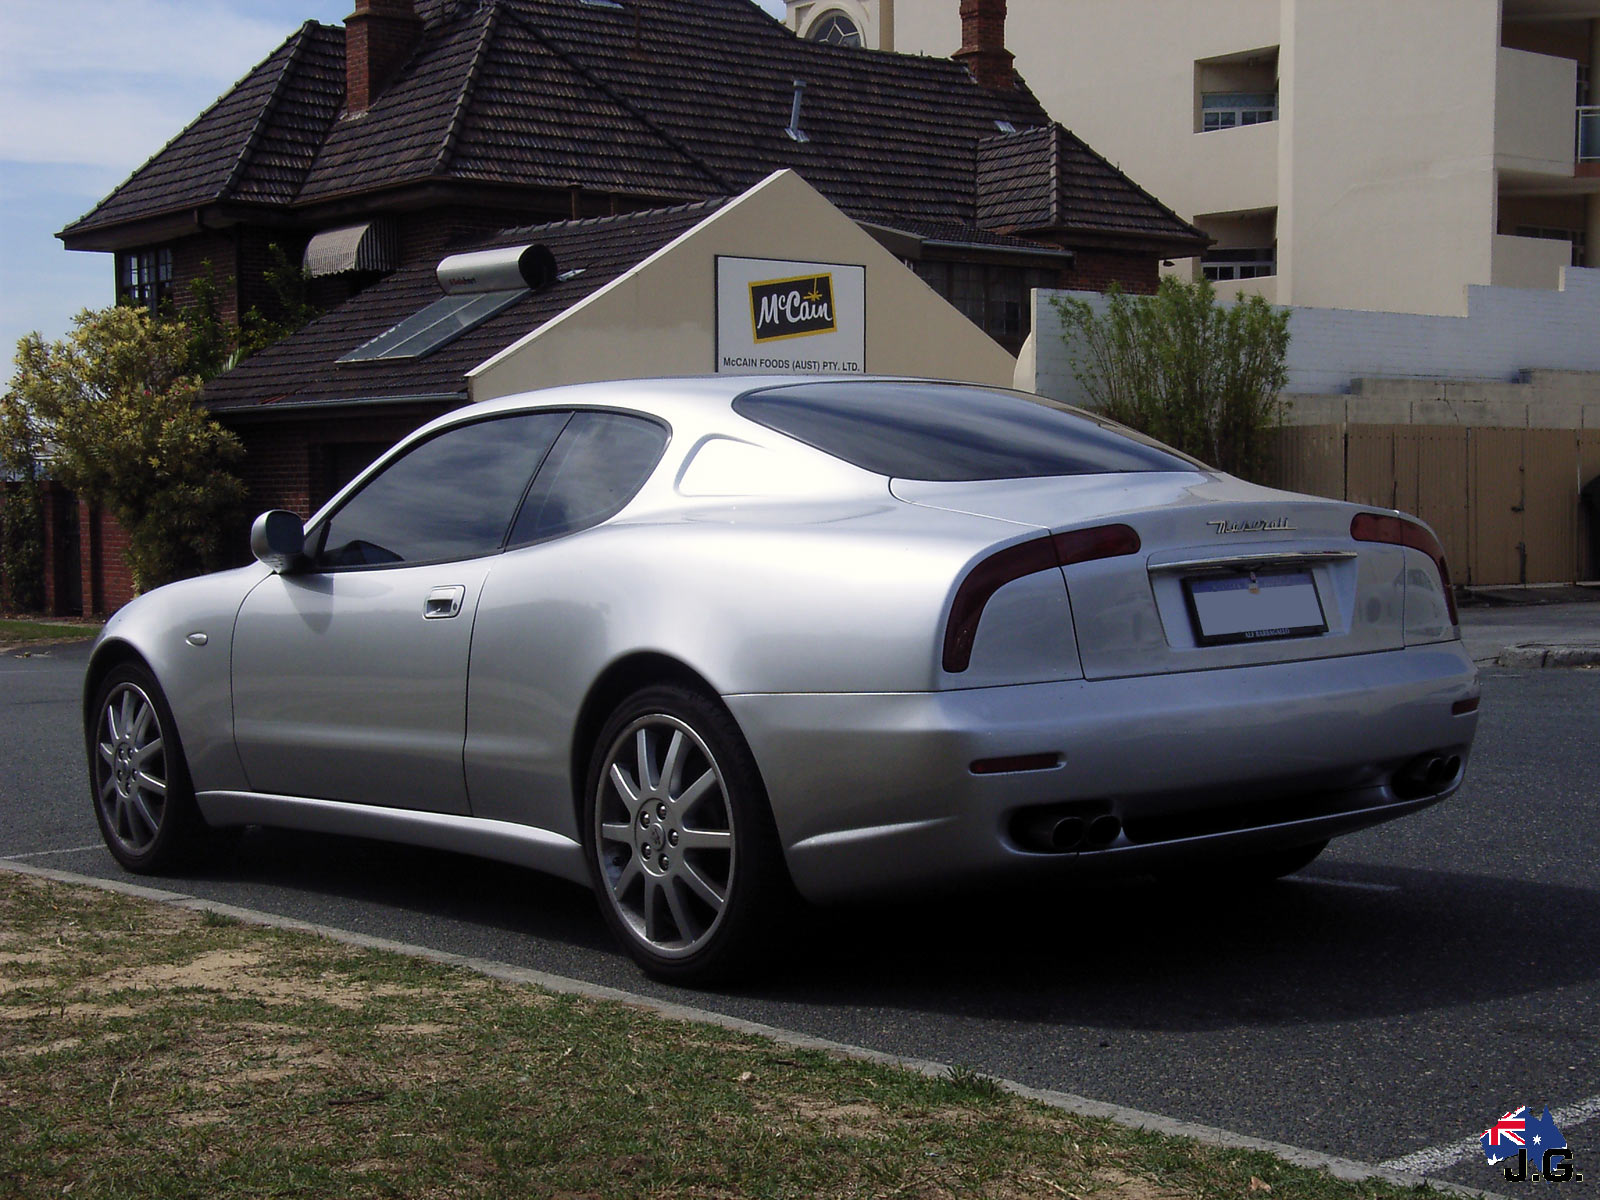 Maserati Perth Car Spotting: